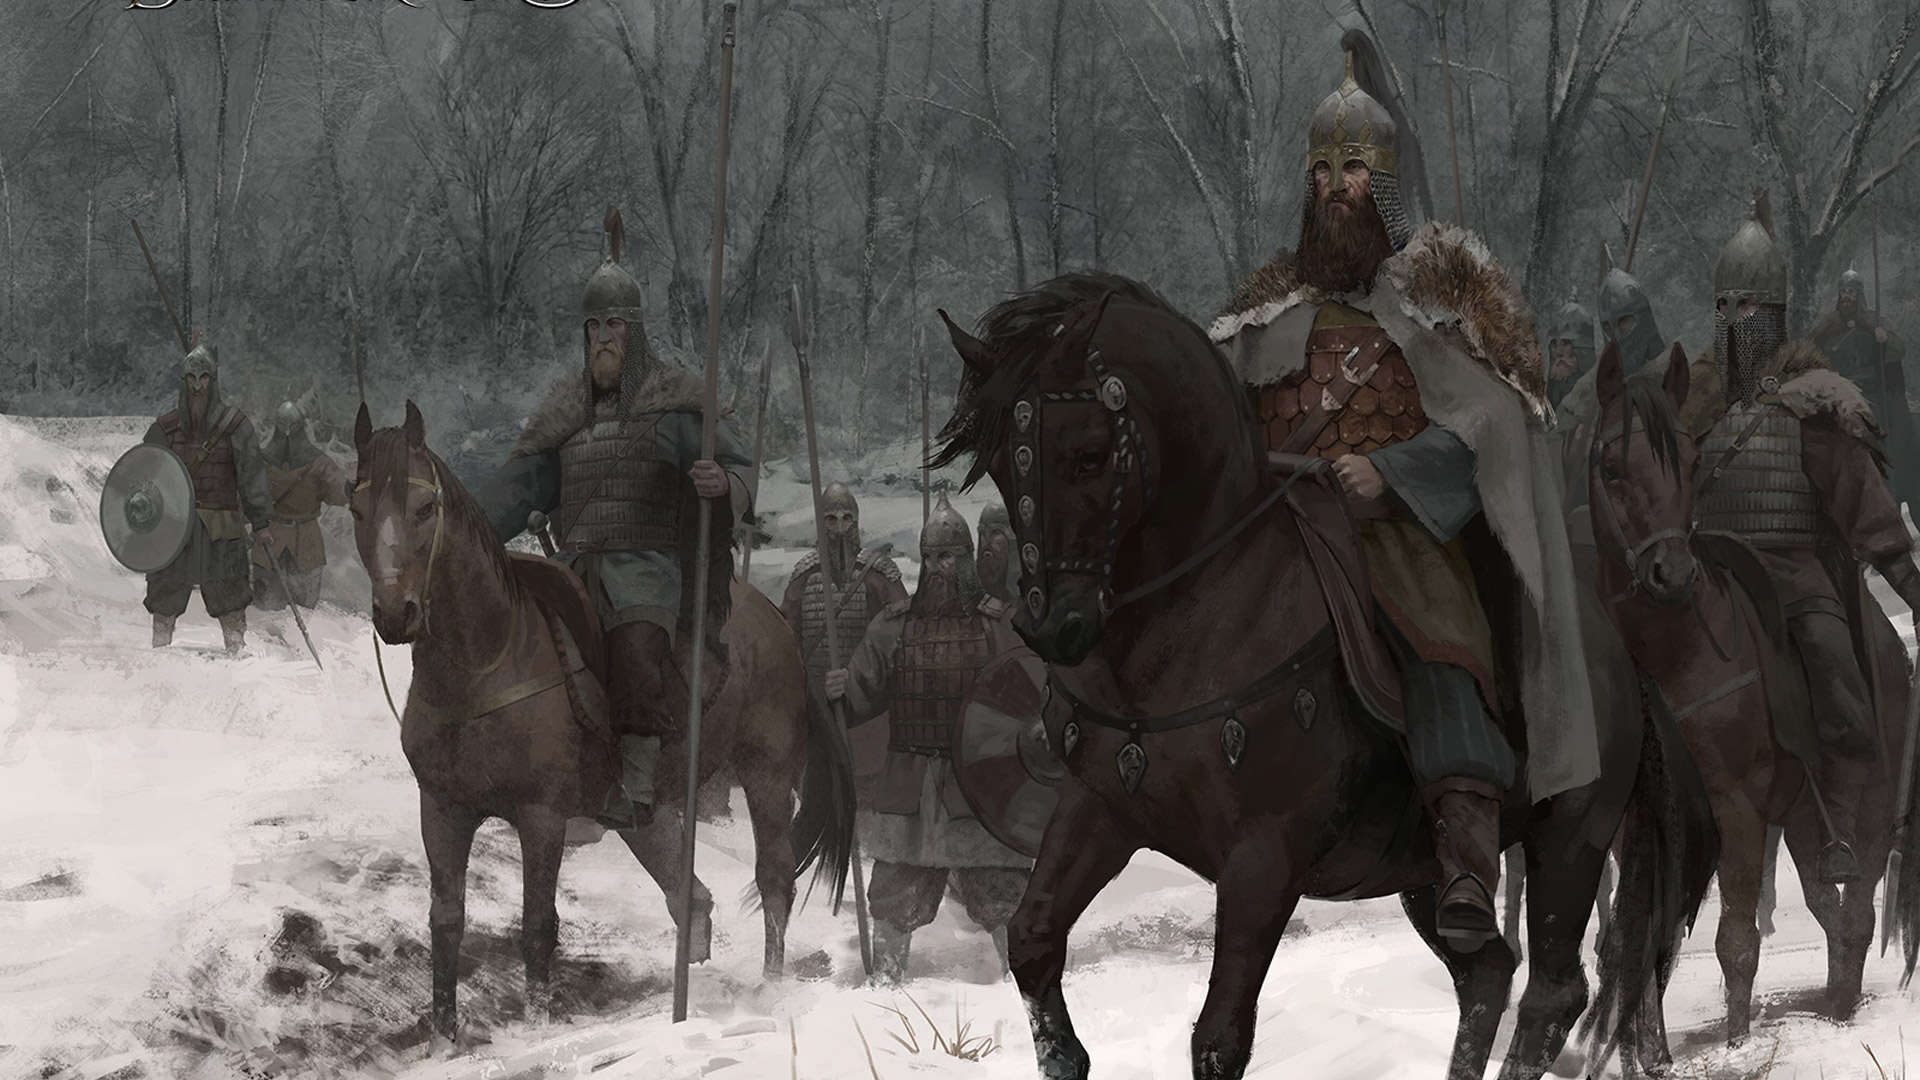 Free Mount & Blade II: Bannerlord Wallpaper in 1920x1080